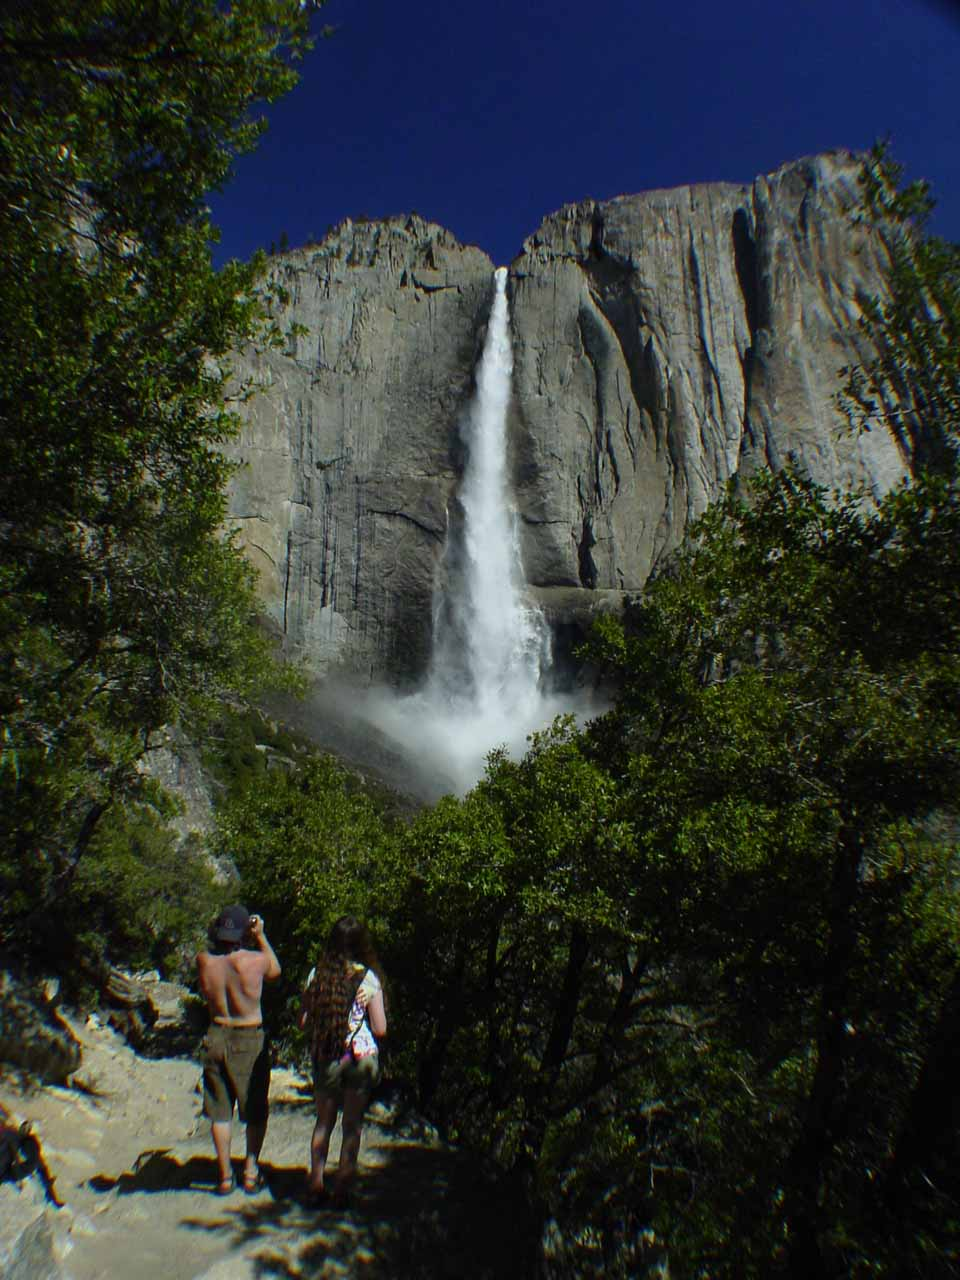 View of Upper Yosemite Falls from the trail